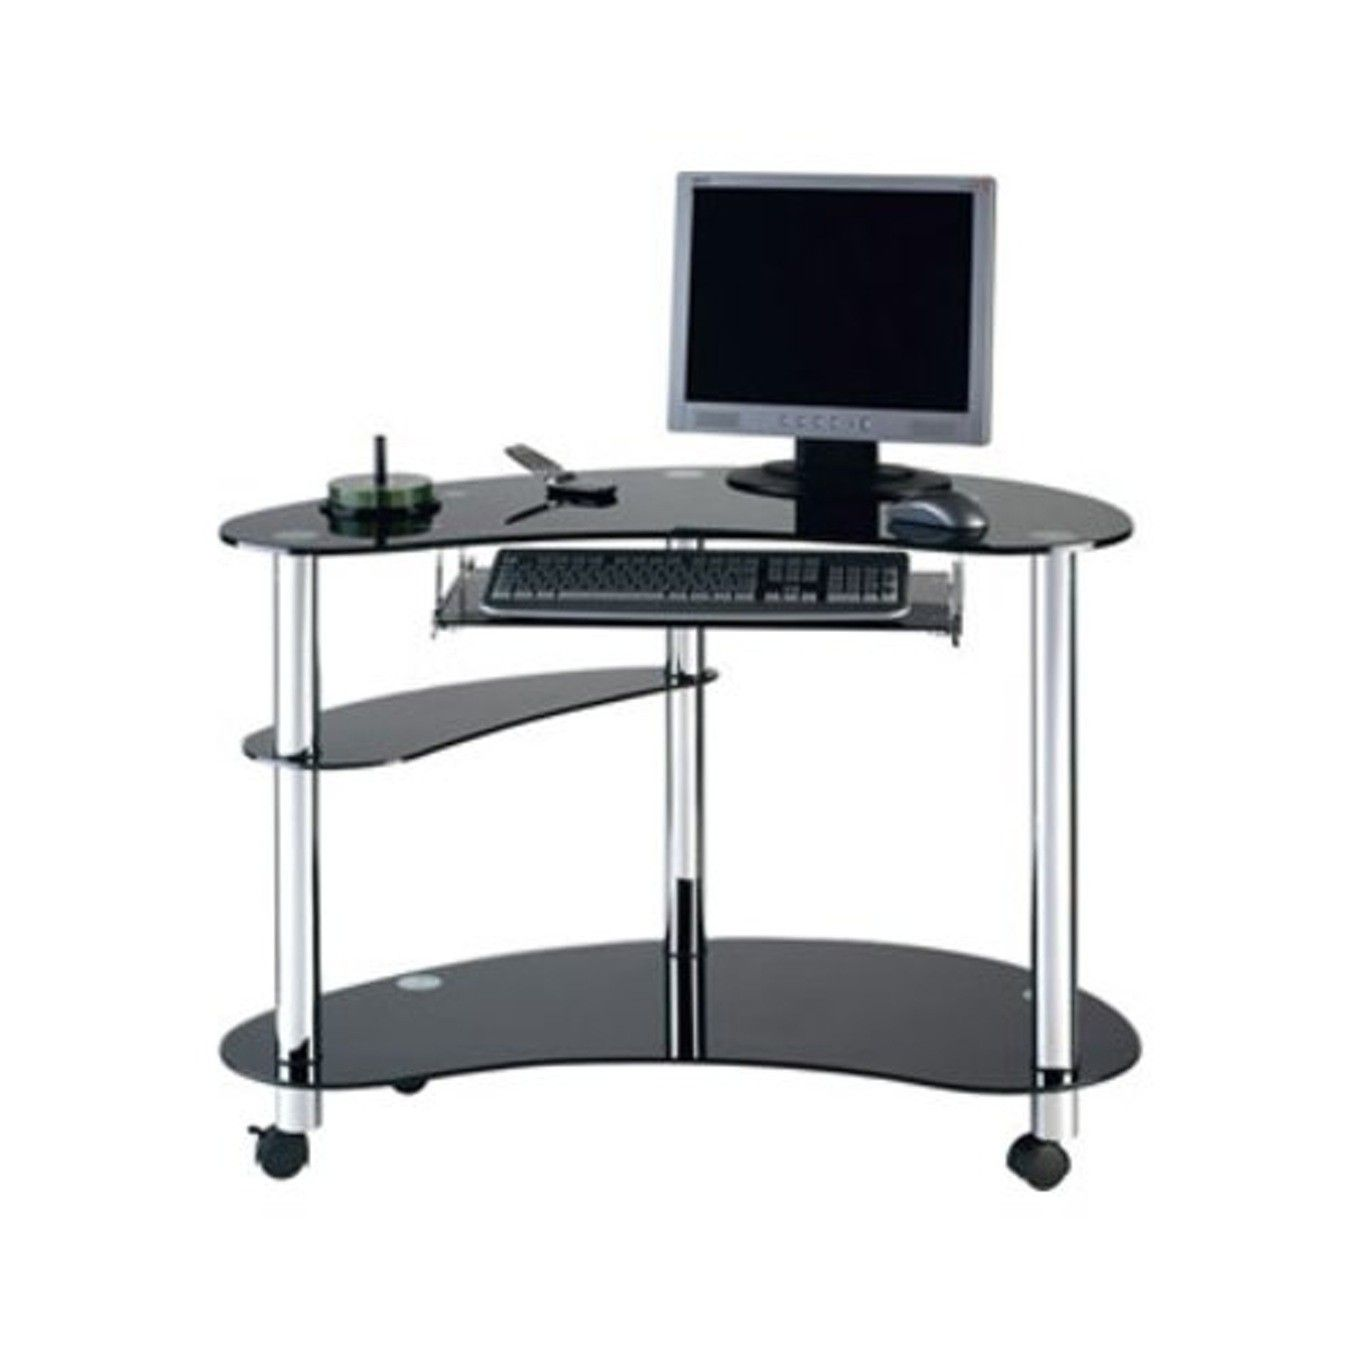 Bureau Informatique D Angle Design Meuble Pour Ordinateur Pas Cher Petit Meuble Ordinateur Conforama Meuble Ordinateur Kitchen Design Office Desk Standing Desk